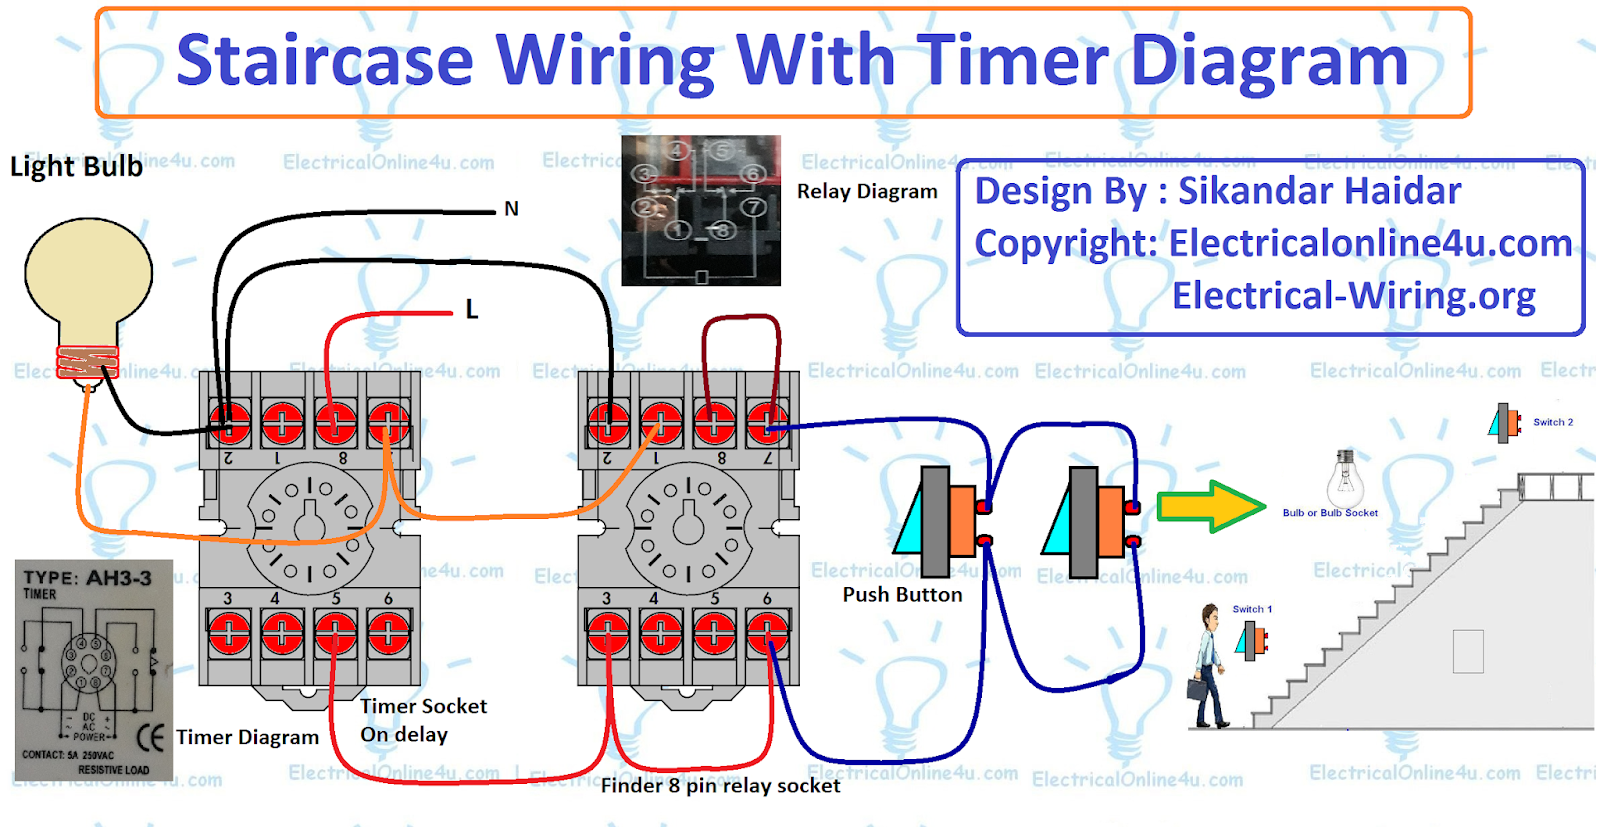 cd566e8d1a43f10057f78abf8a685816 this post is about the staircase timer wiring diagram in the